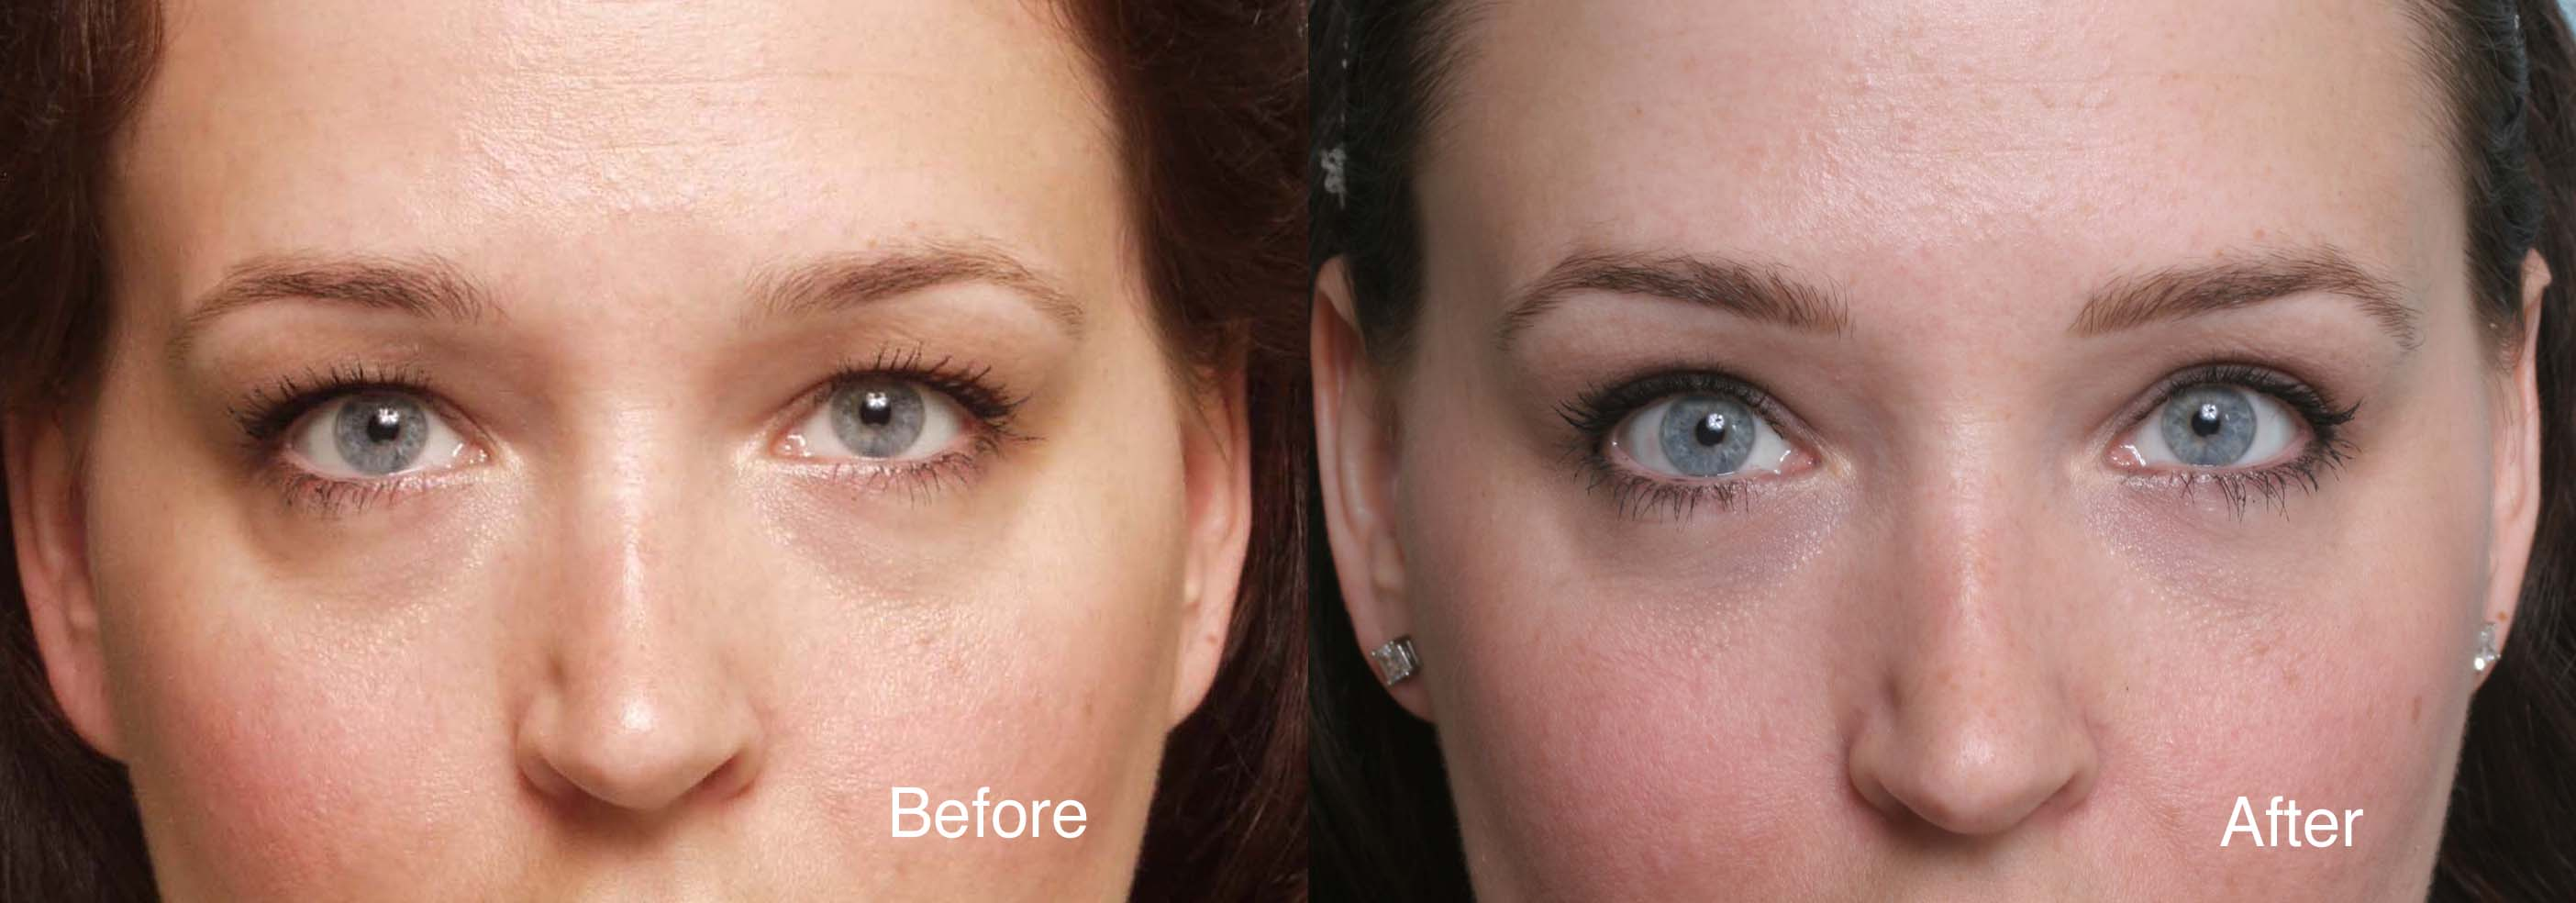 Hollow Eyes Post Plastic Surgery Before After 1